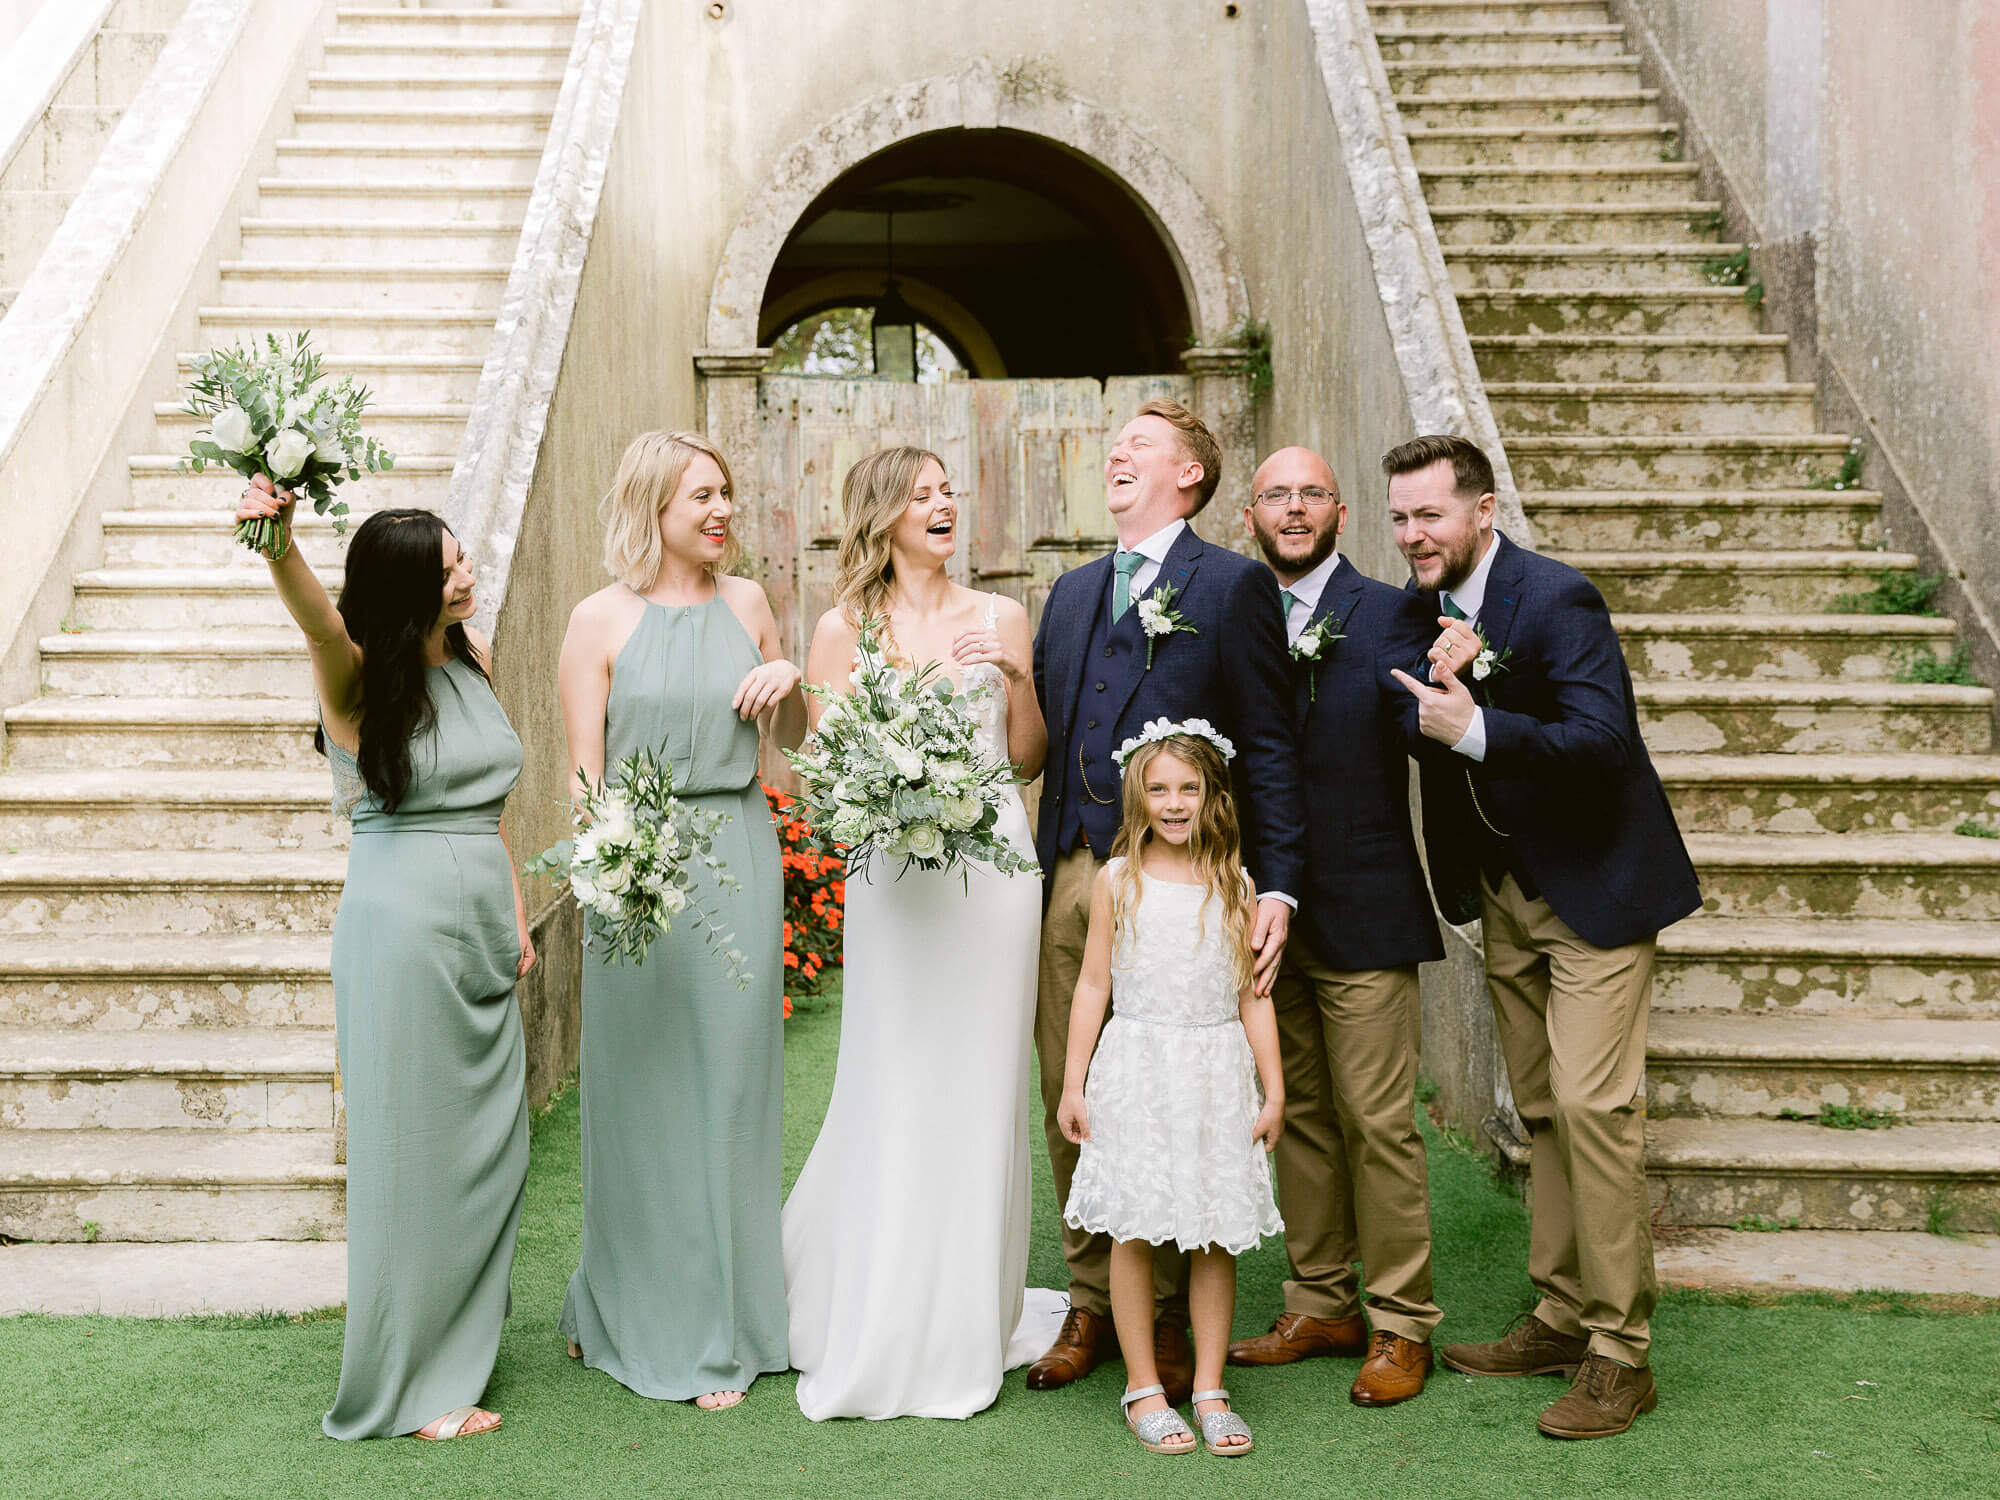 cheering couple, bridesmaids, flower girl, best men portrait after a wedding ceremony by Portugal Wedding Photographer